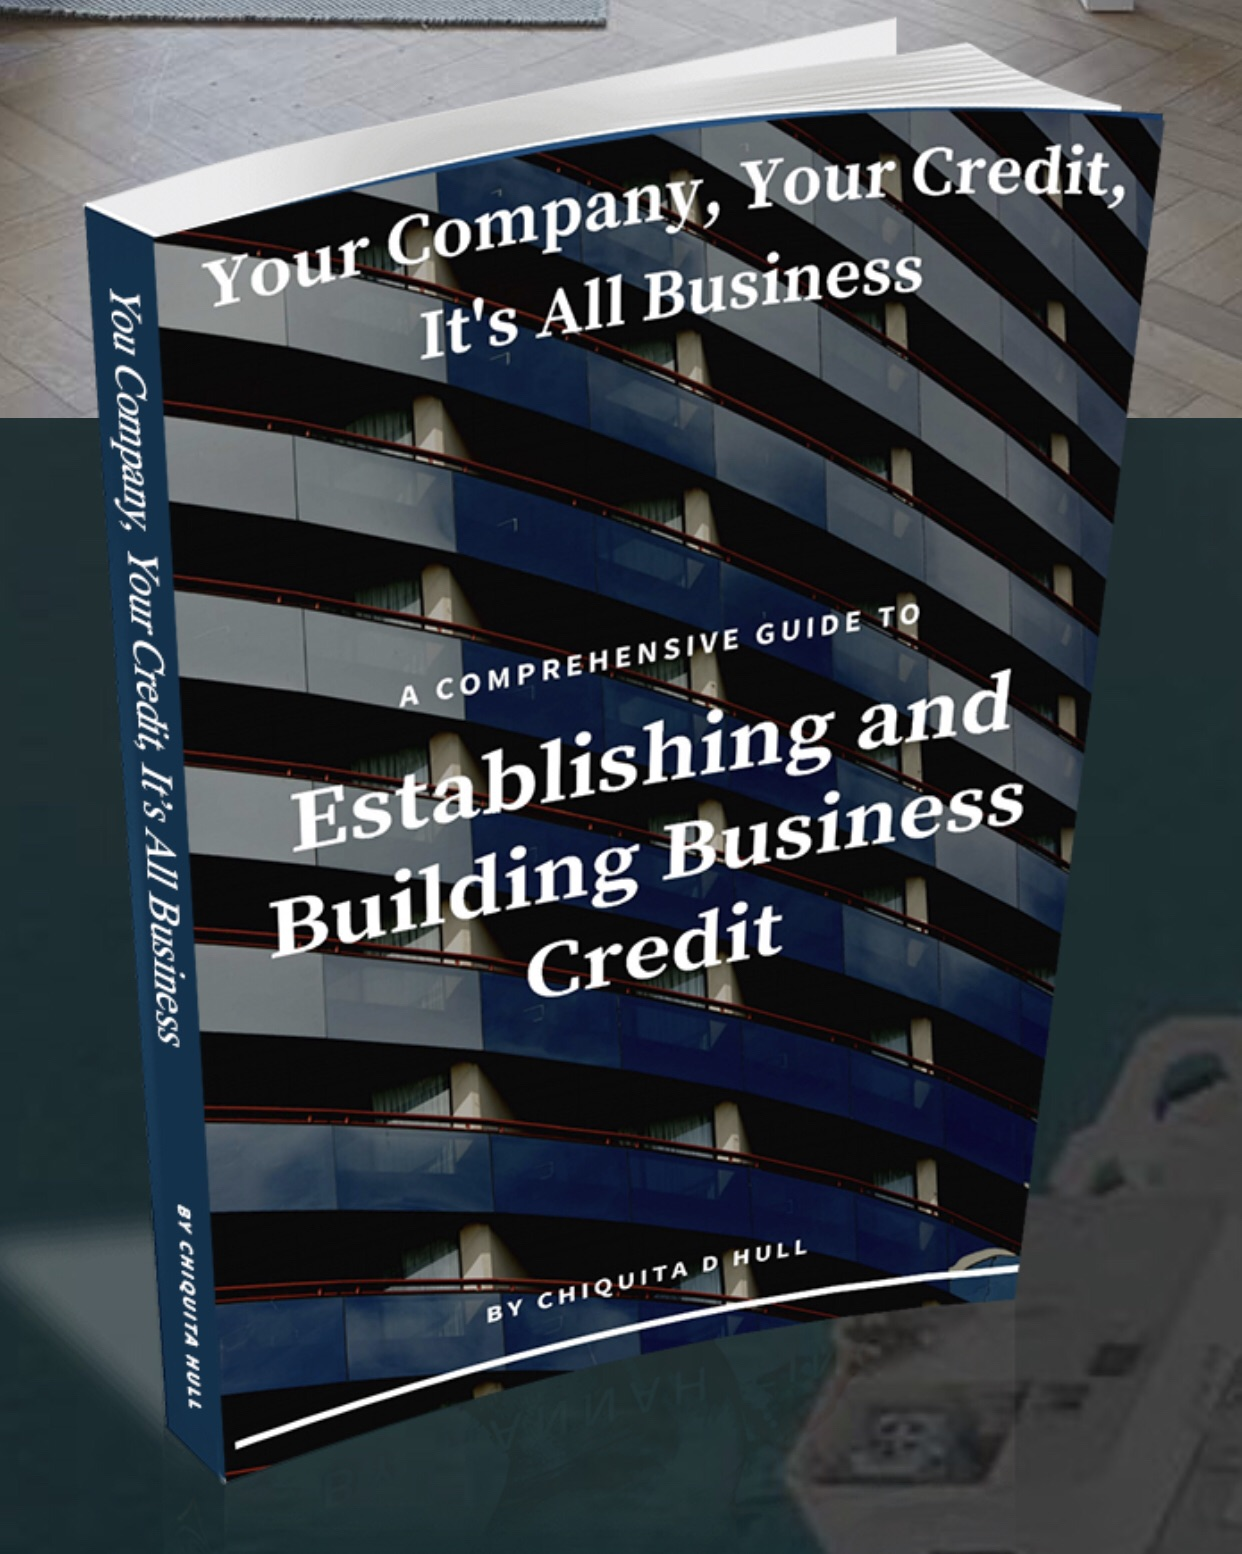 Chicago Financial Expert is helping business owners establish credit